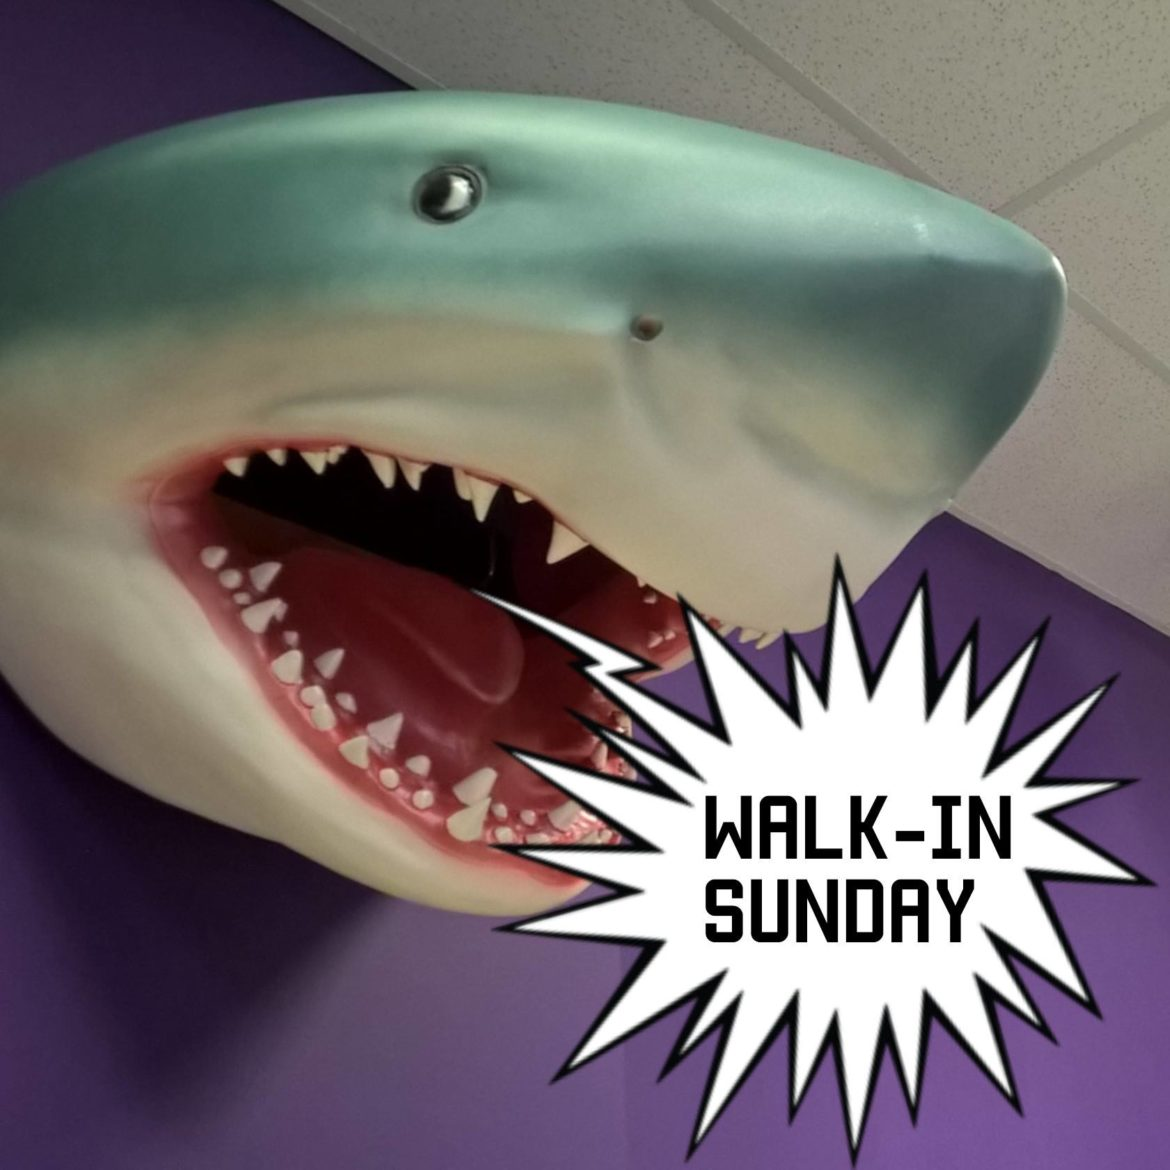 Walk-in Sundays